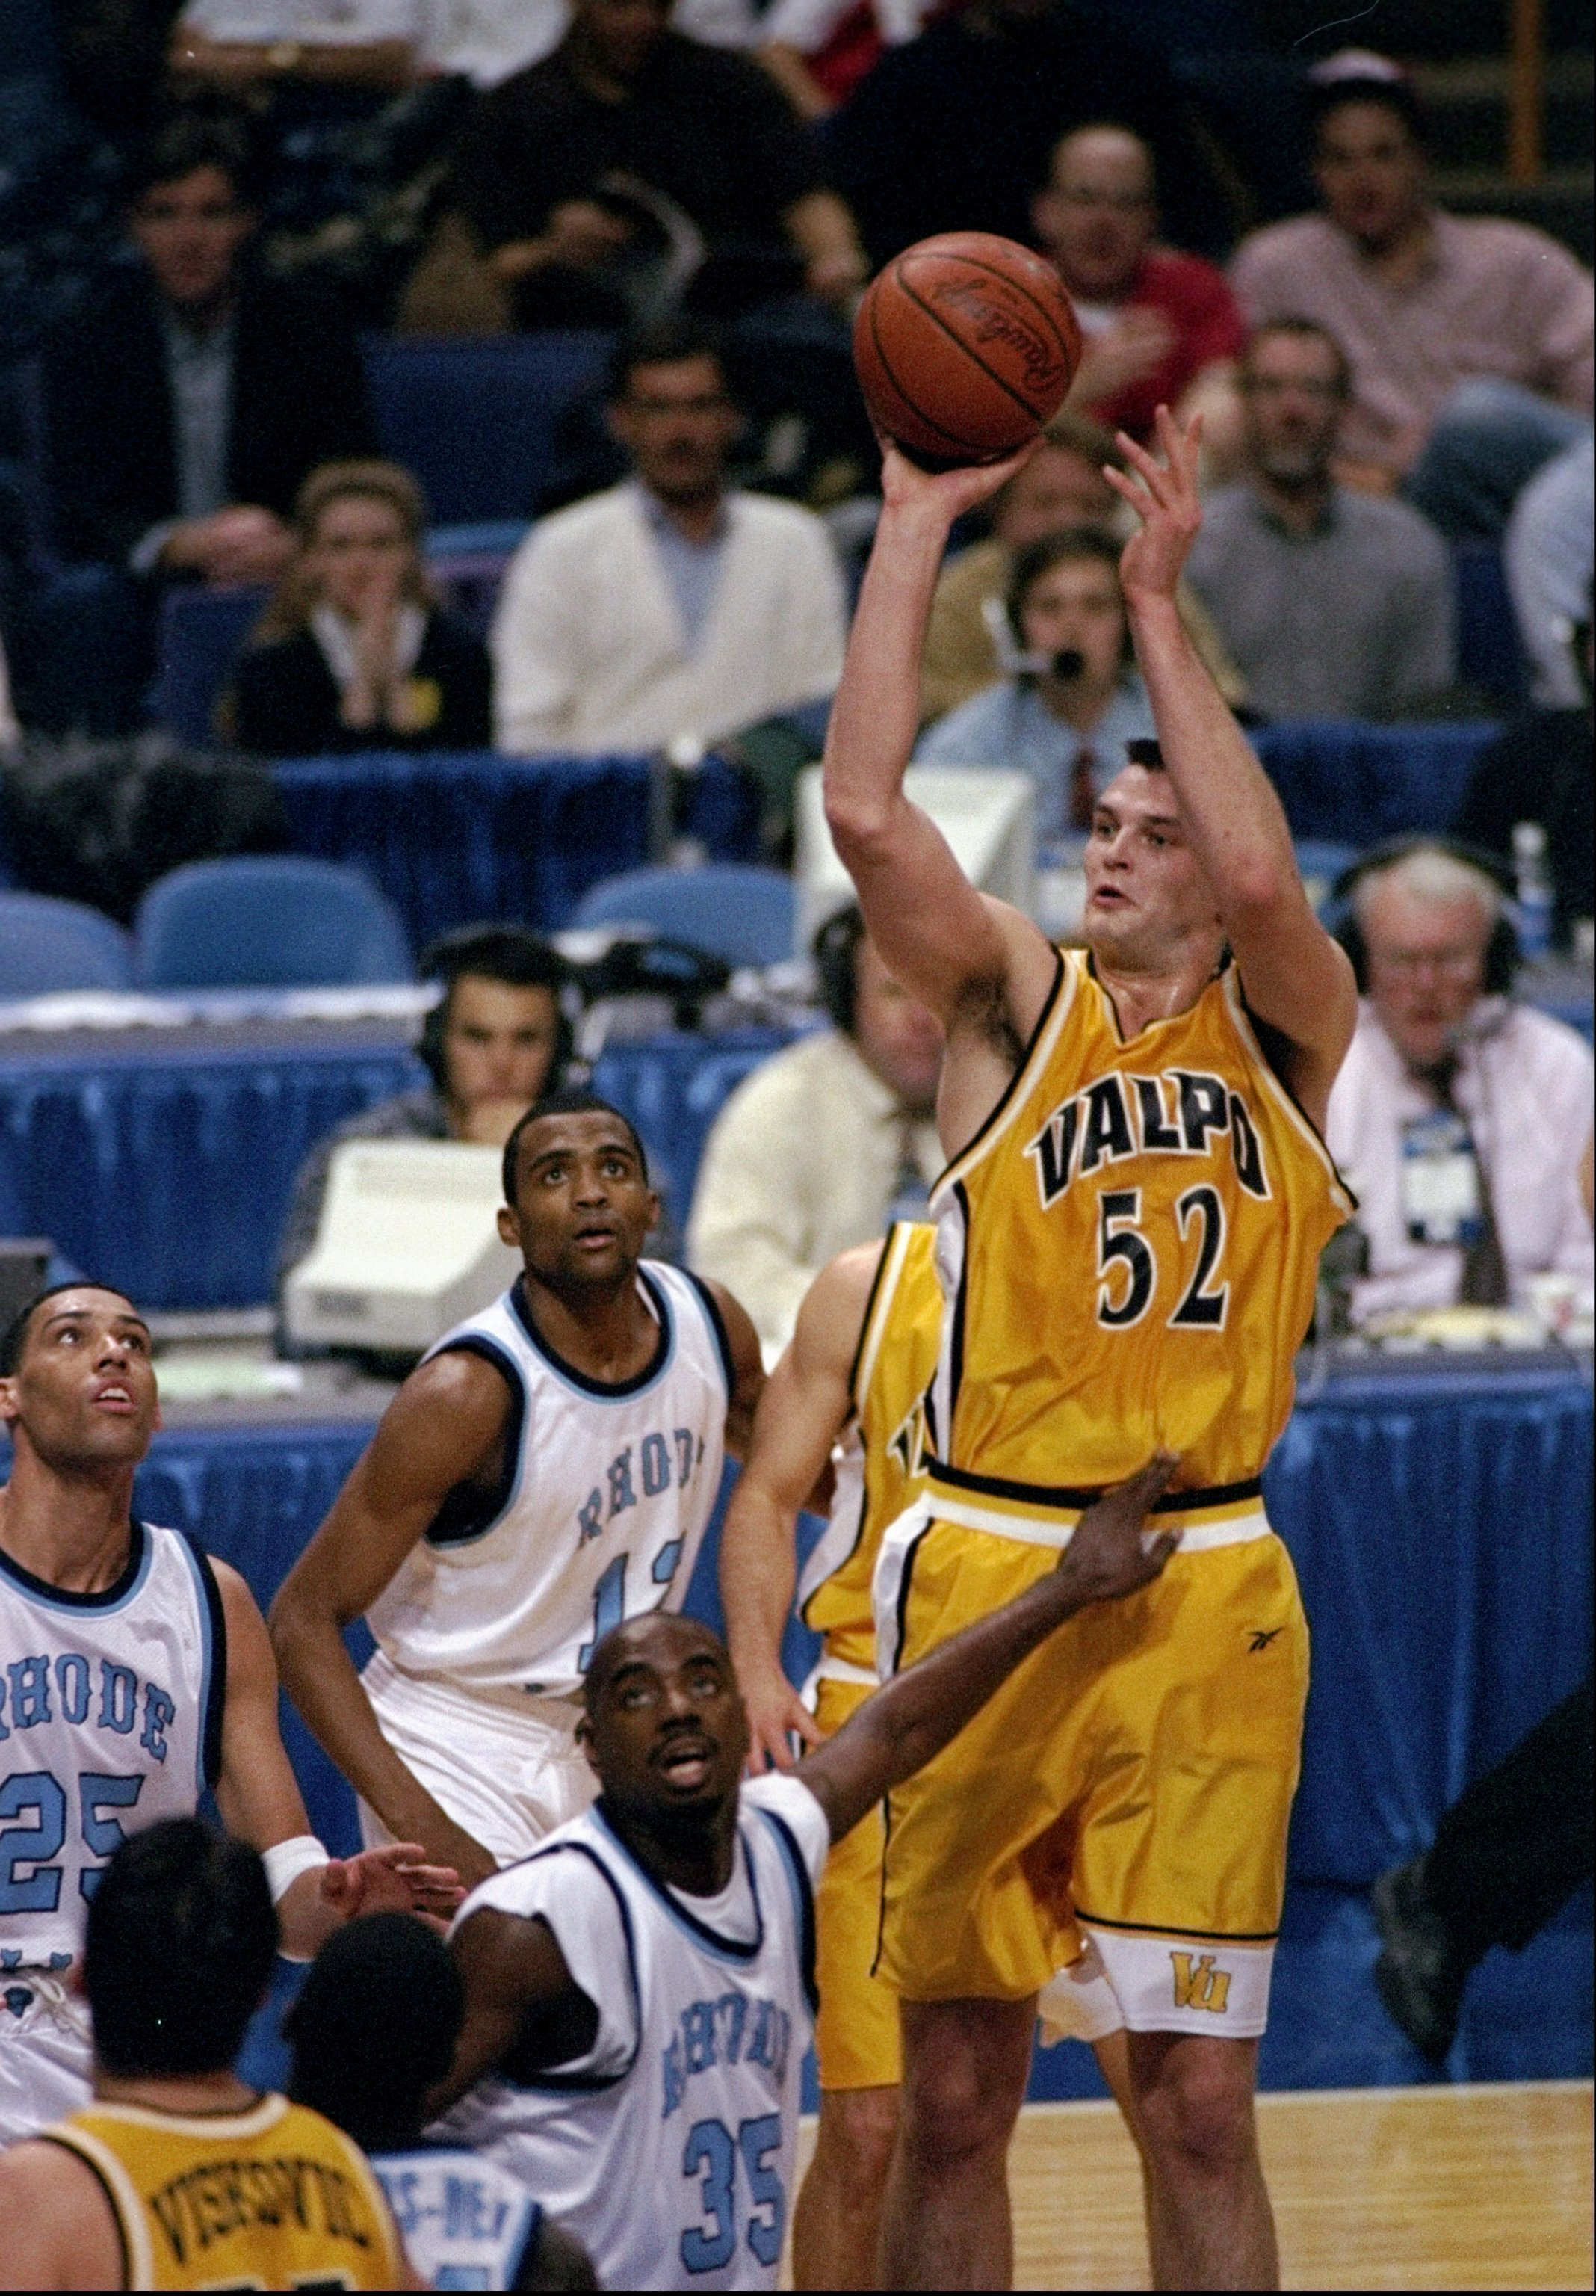 20 Mar 1998:  Center Antanas Vilcinskas of the Valparaiso Crusaders (right) in action against forward Joshua King and center Luther Clay of the Rhode Island Rams during an NCAA tournament game.  Rhode Island defeated Valparaiso 74-68. Mandatory Credit: Ma